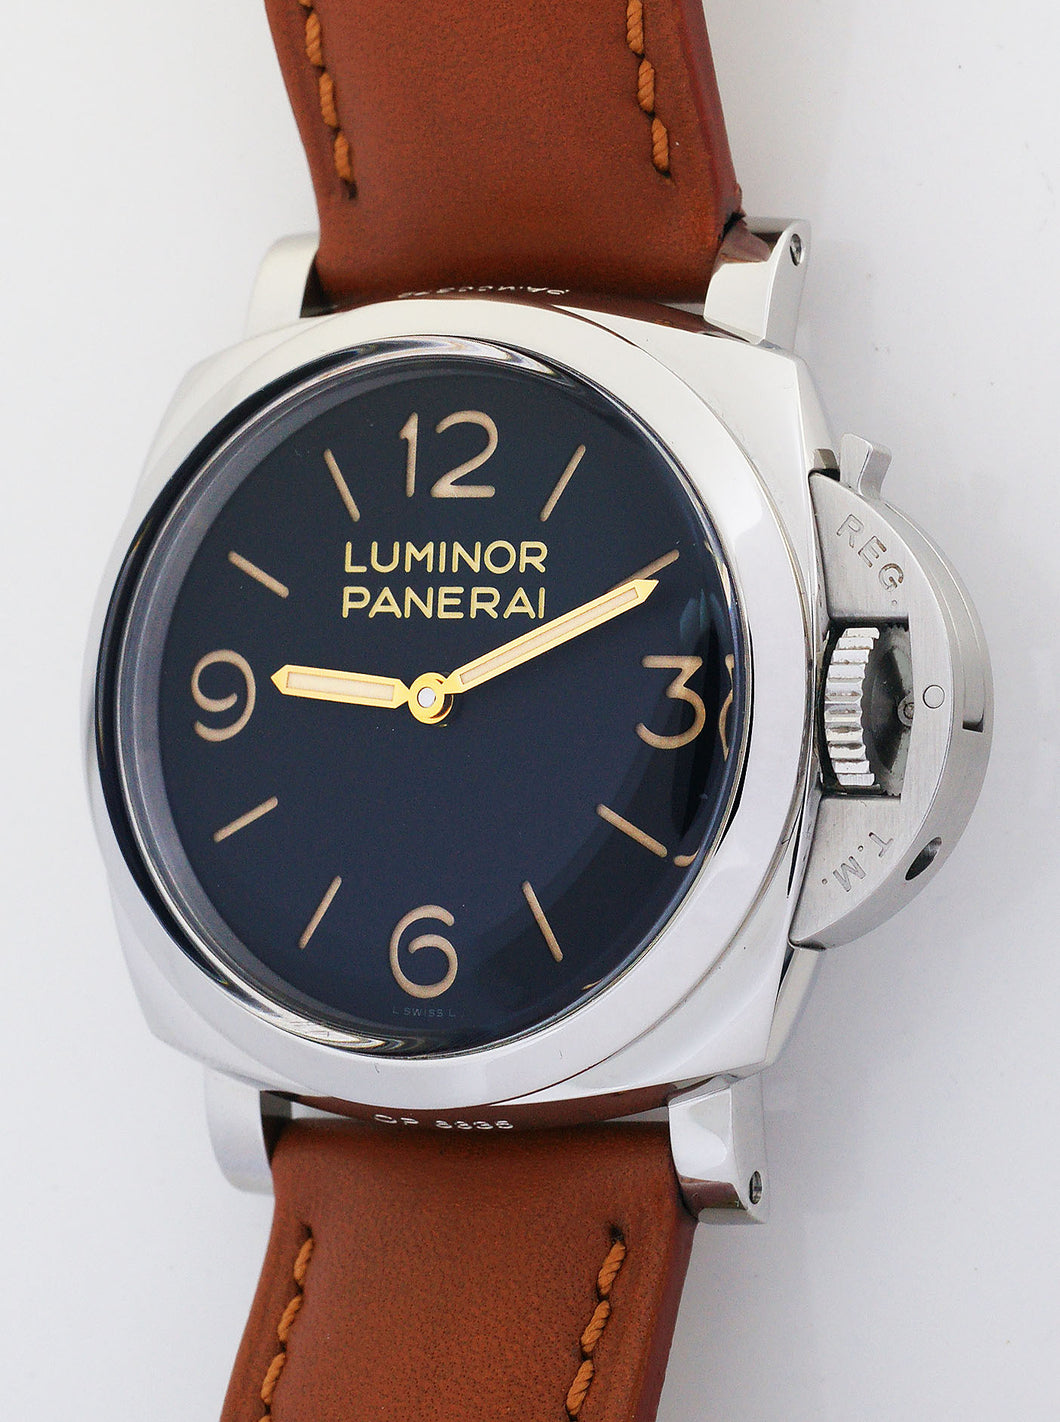 Panerai Luminor 1950 3 Days Acciaio Stainless Steel Men's Watch